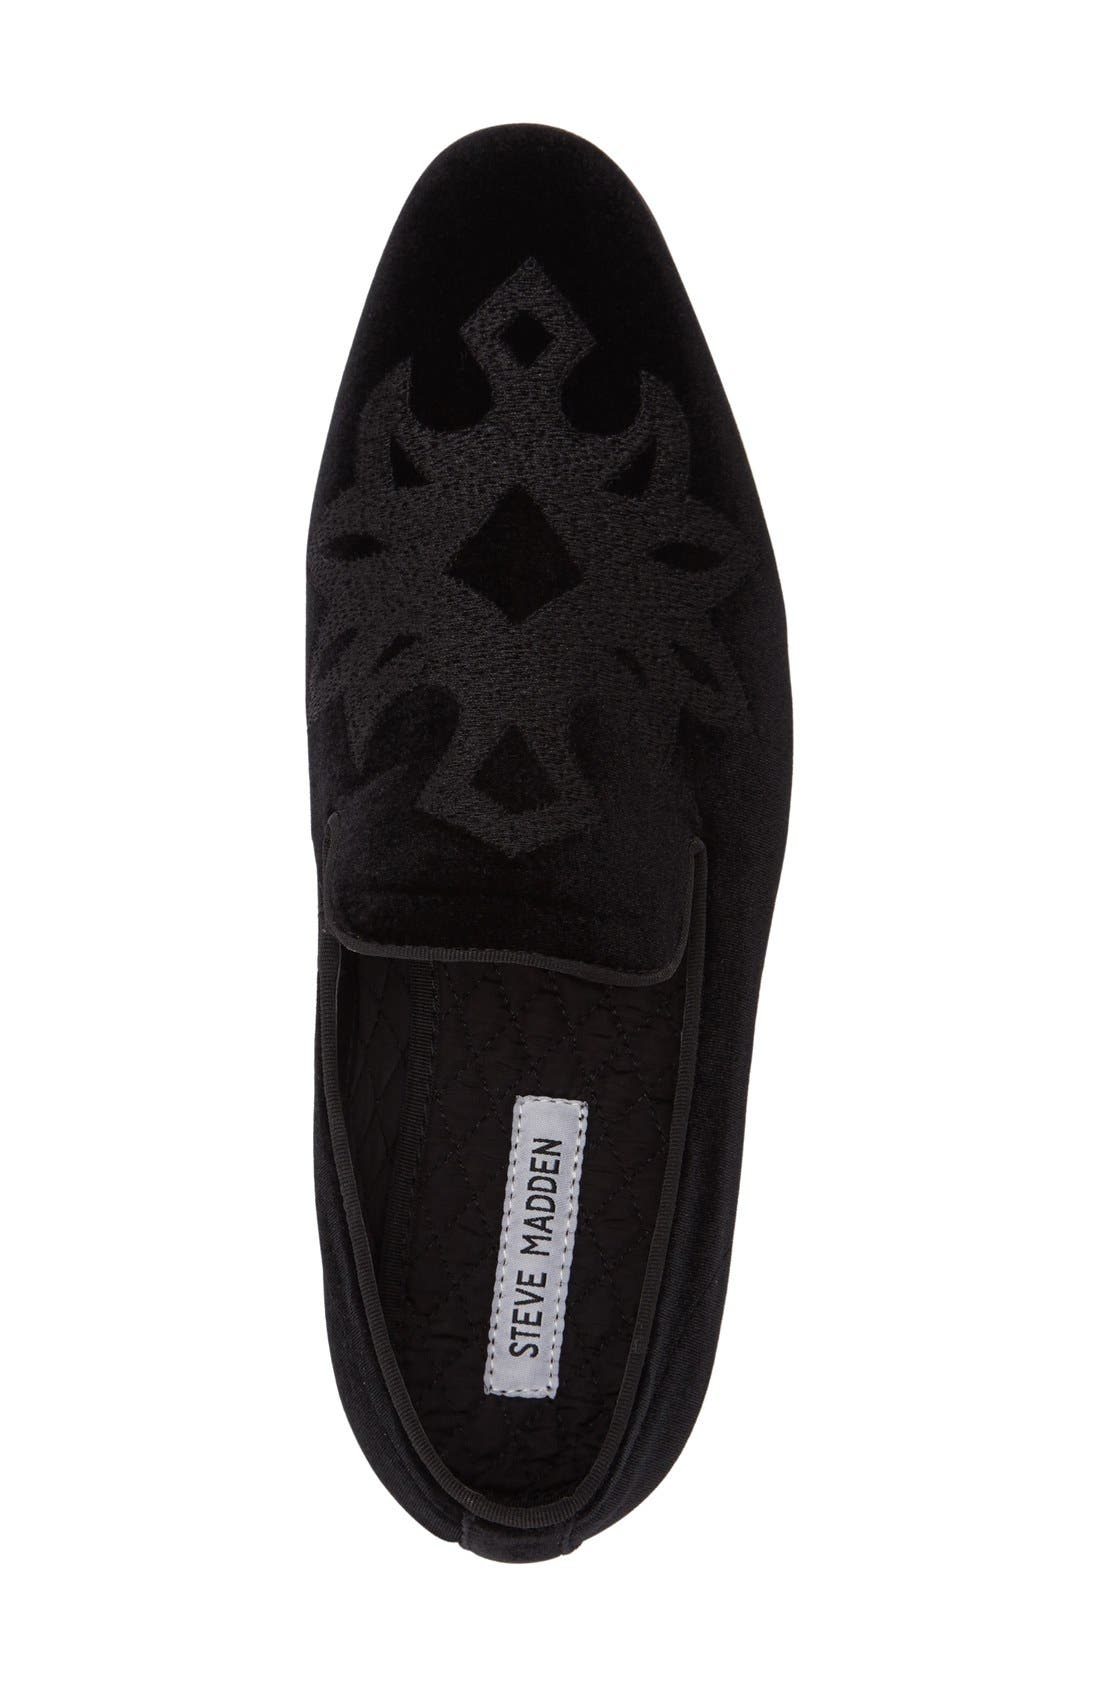 Lorax Venetian Loafer,                             Alternate thumbnail 3, color,                             BLACK VELVET